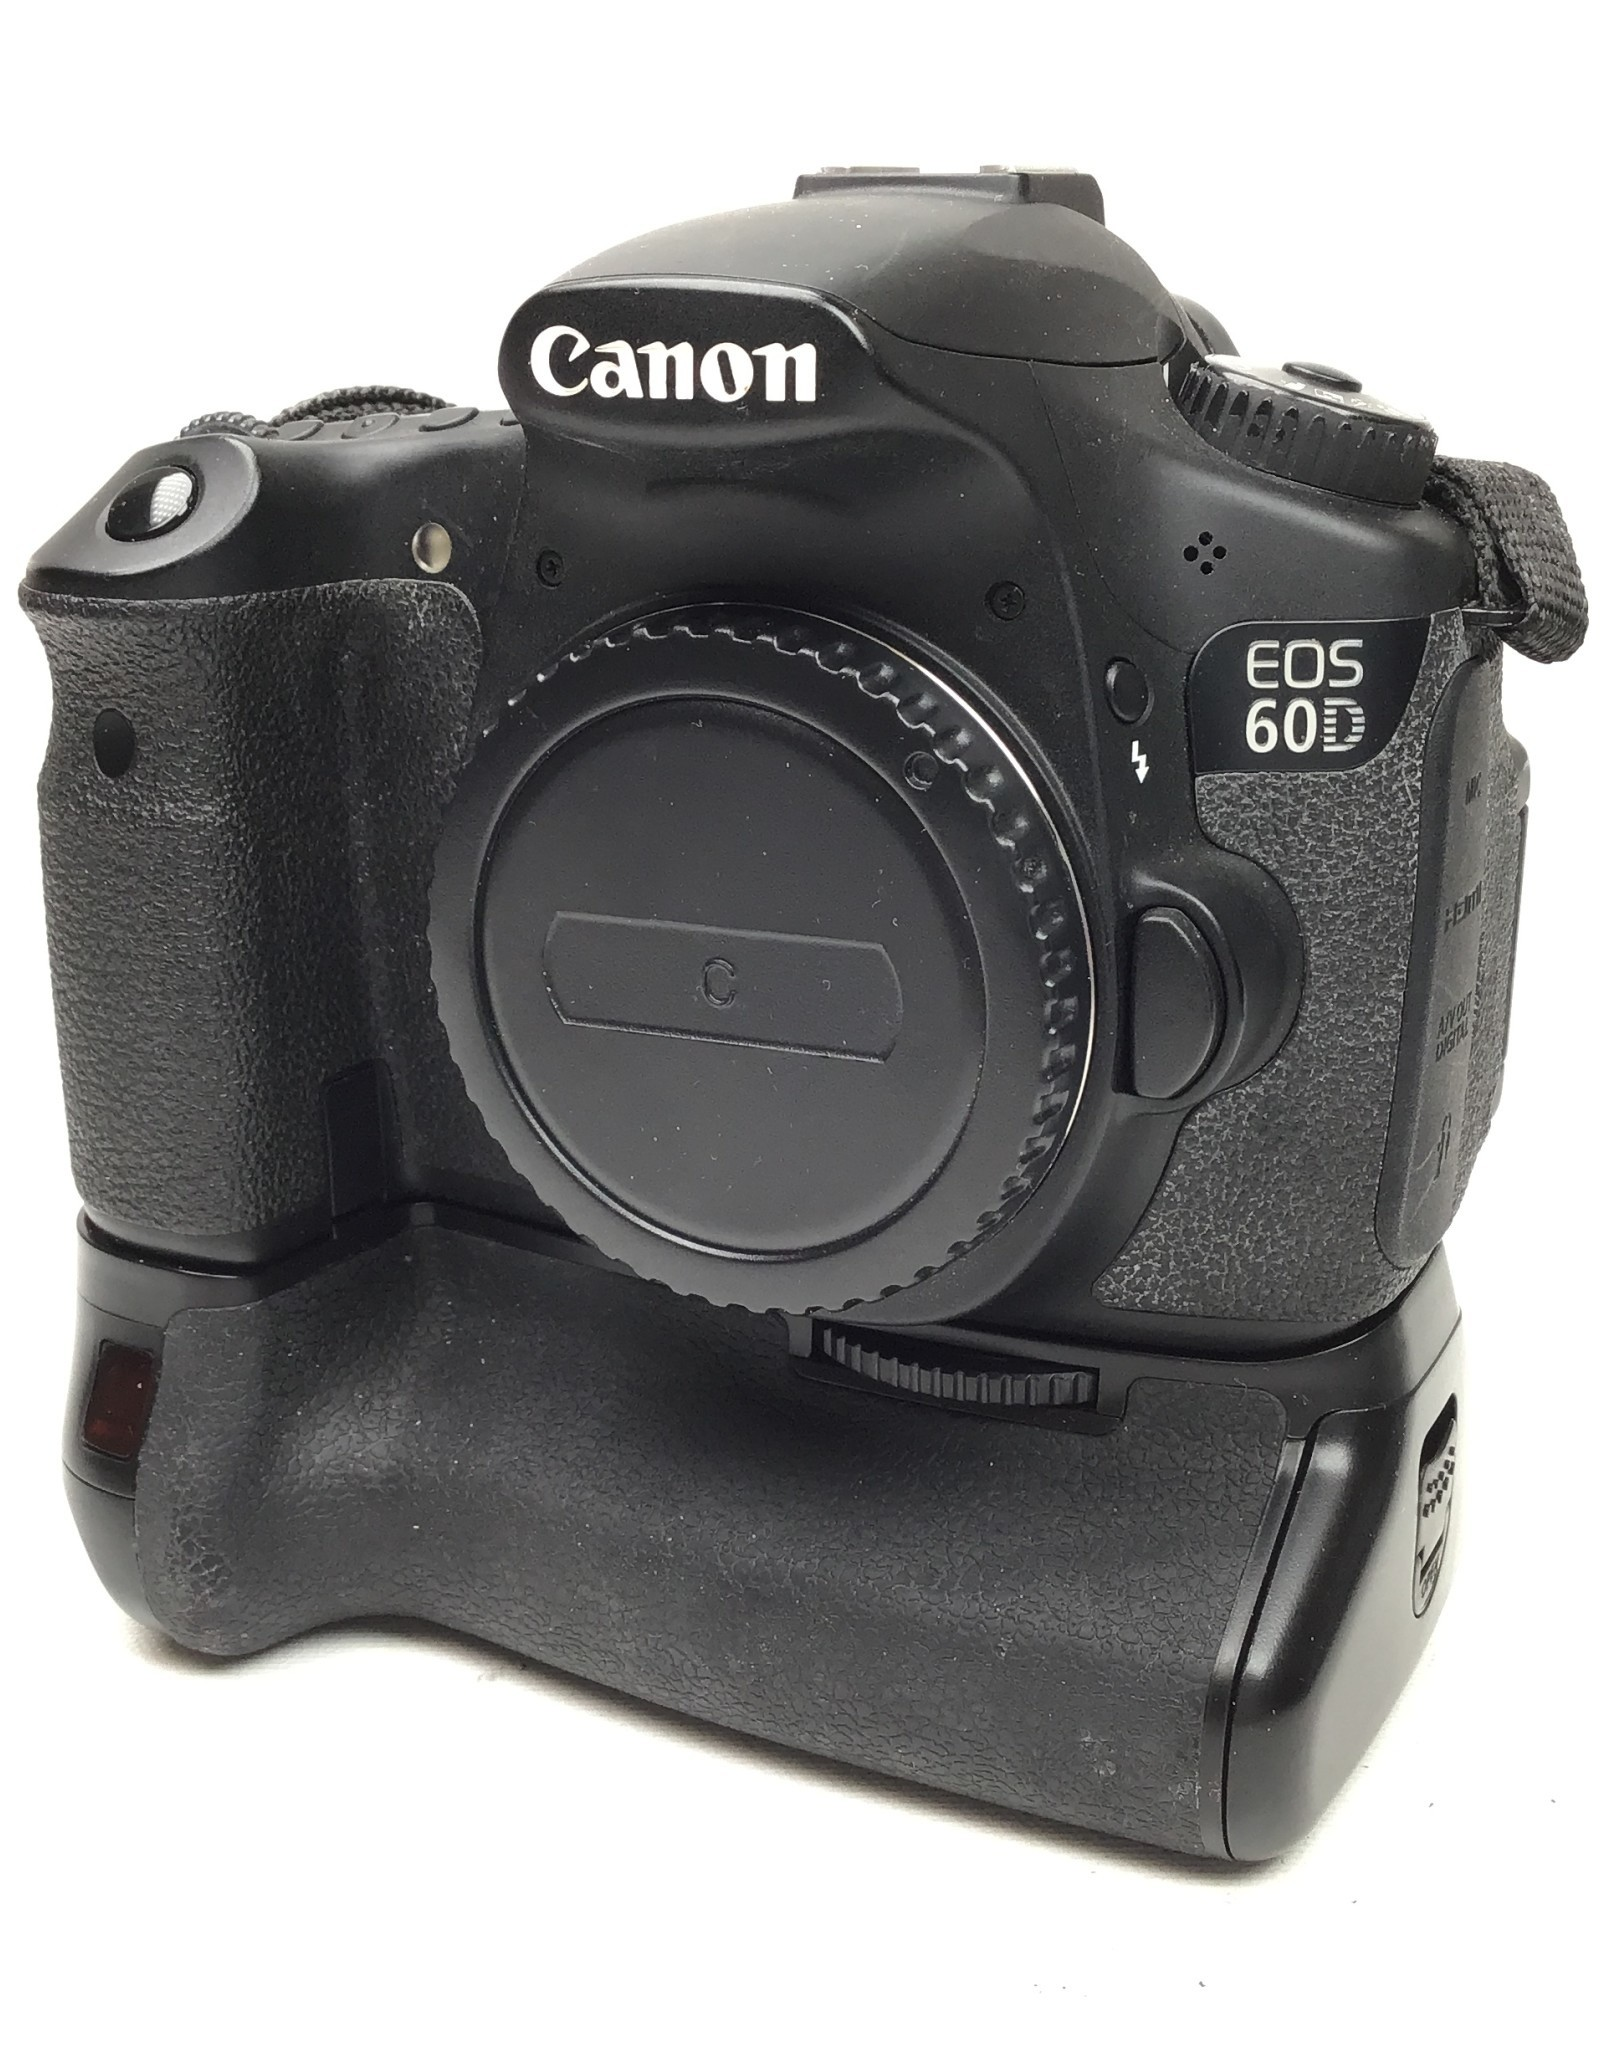 CANON Canon EOS 60D Camera with Power Xtra Grip Used Good